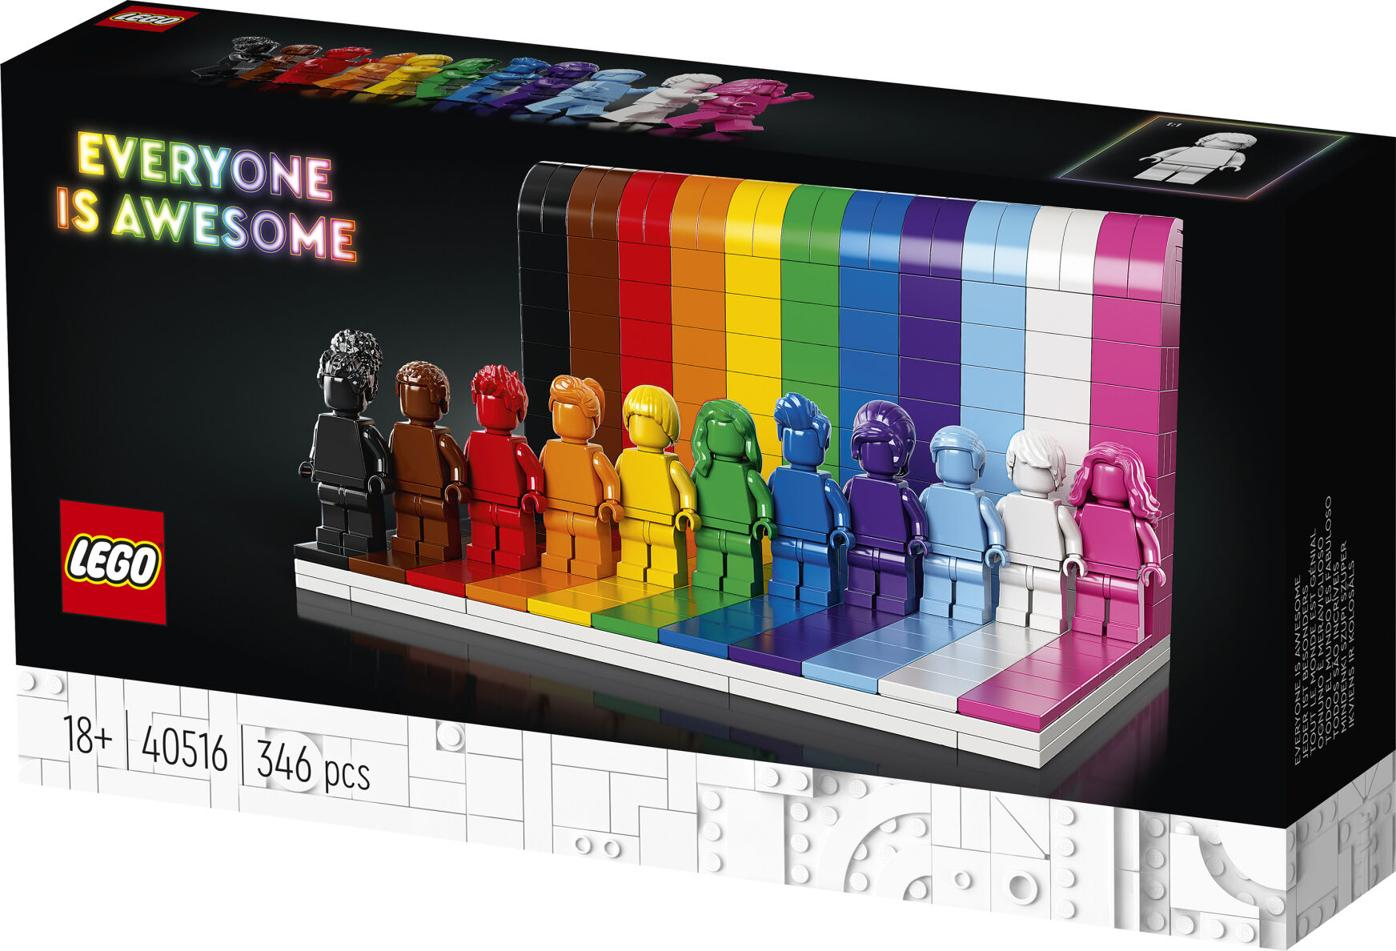 LEGO unveils LGBTQ-themed Everyone Is Awesome set in time for Pride Month 19